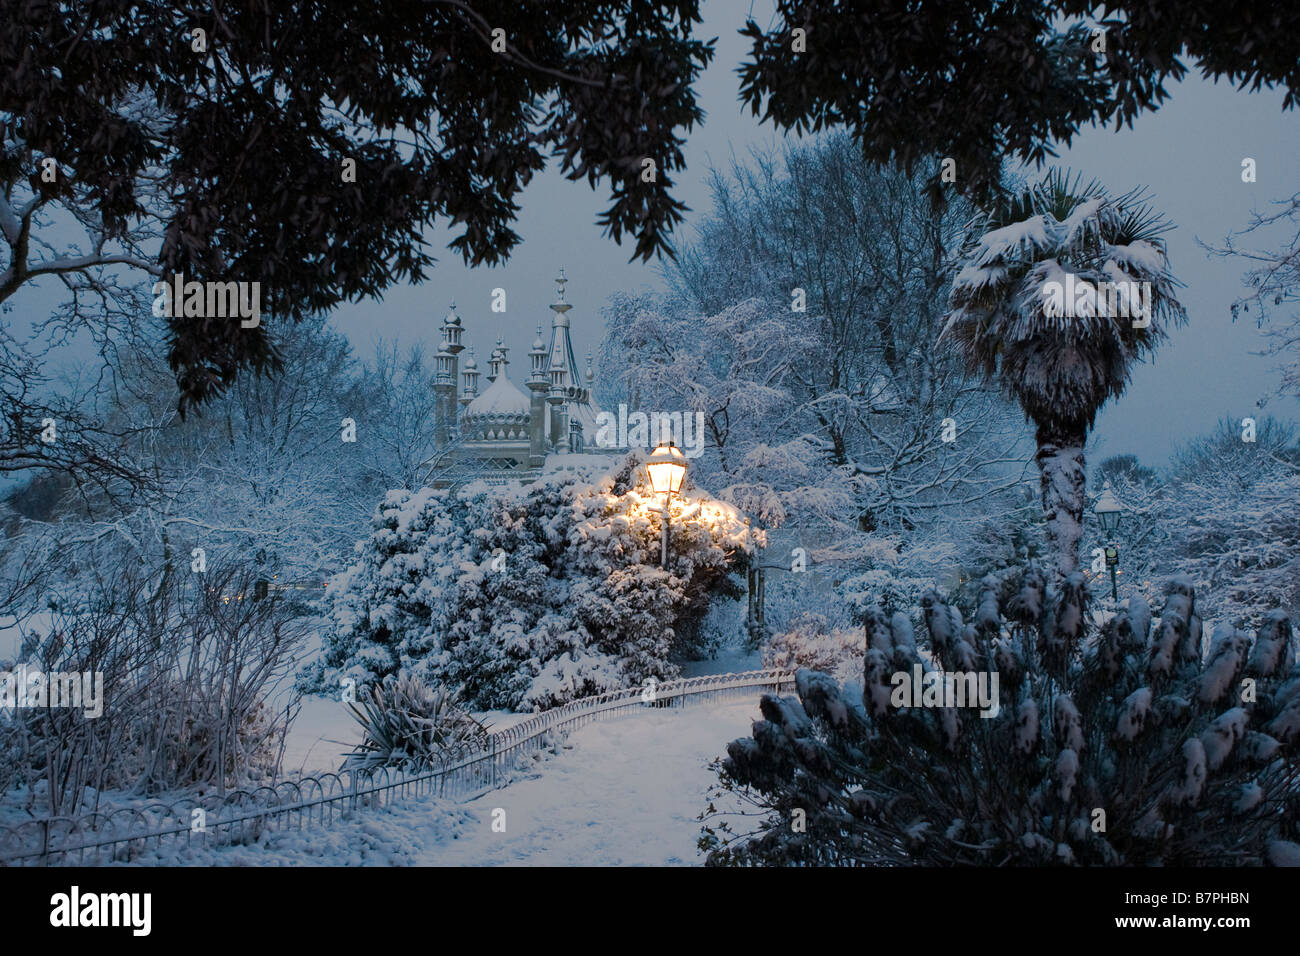 A solitary traditional style period street light illuminates the snow covered gardens of the Royal Pavilion Brighton Stock Photo